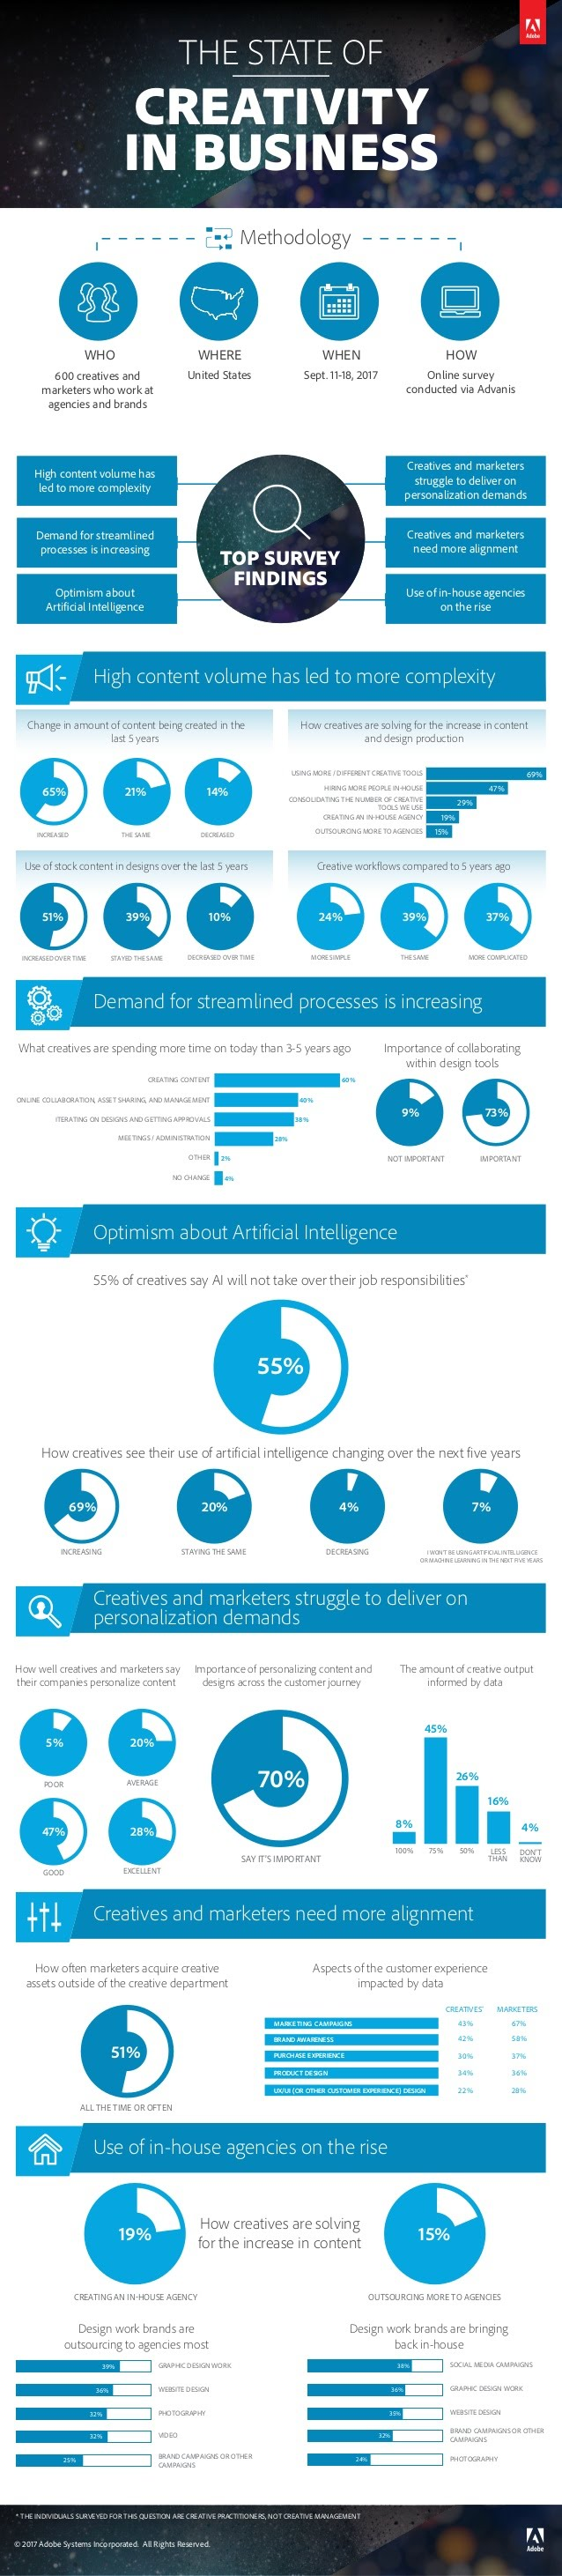 The State of Creativity in Business [Infographic]   Social Media Today